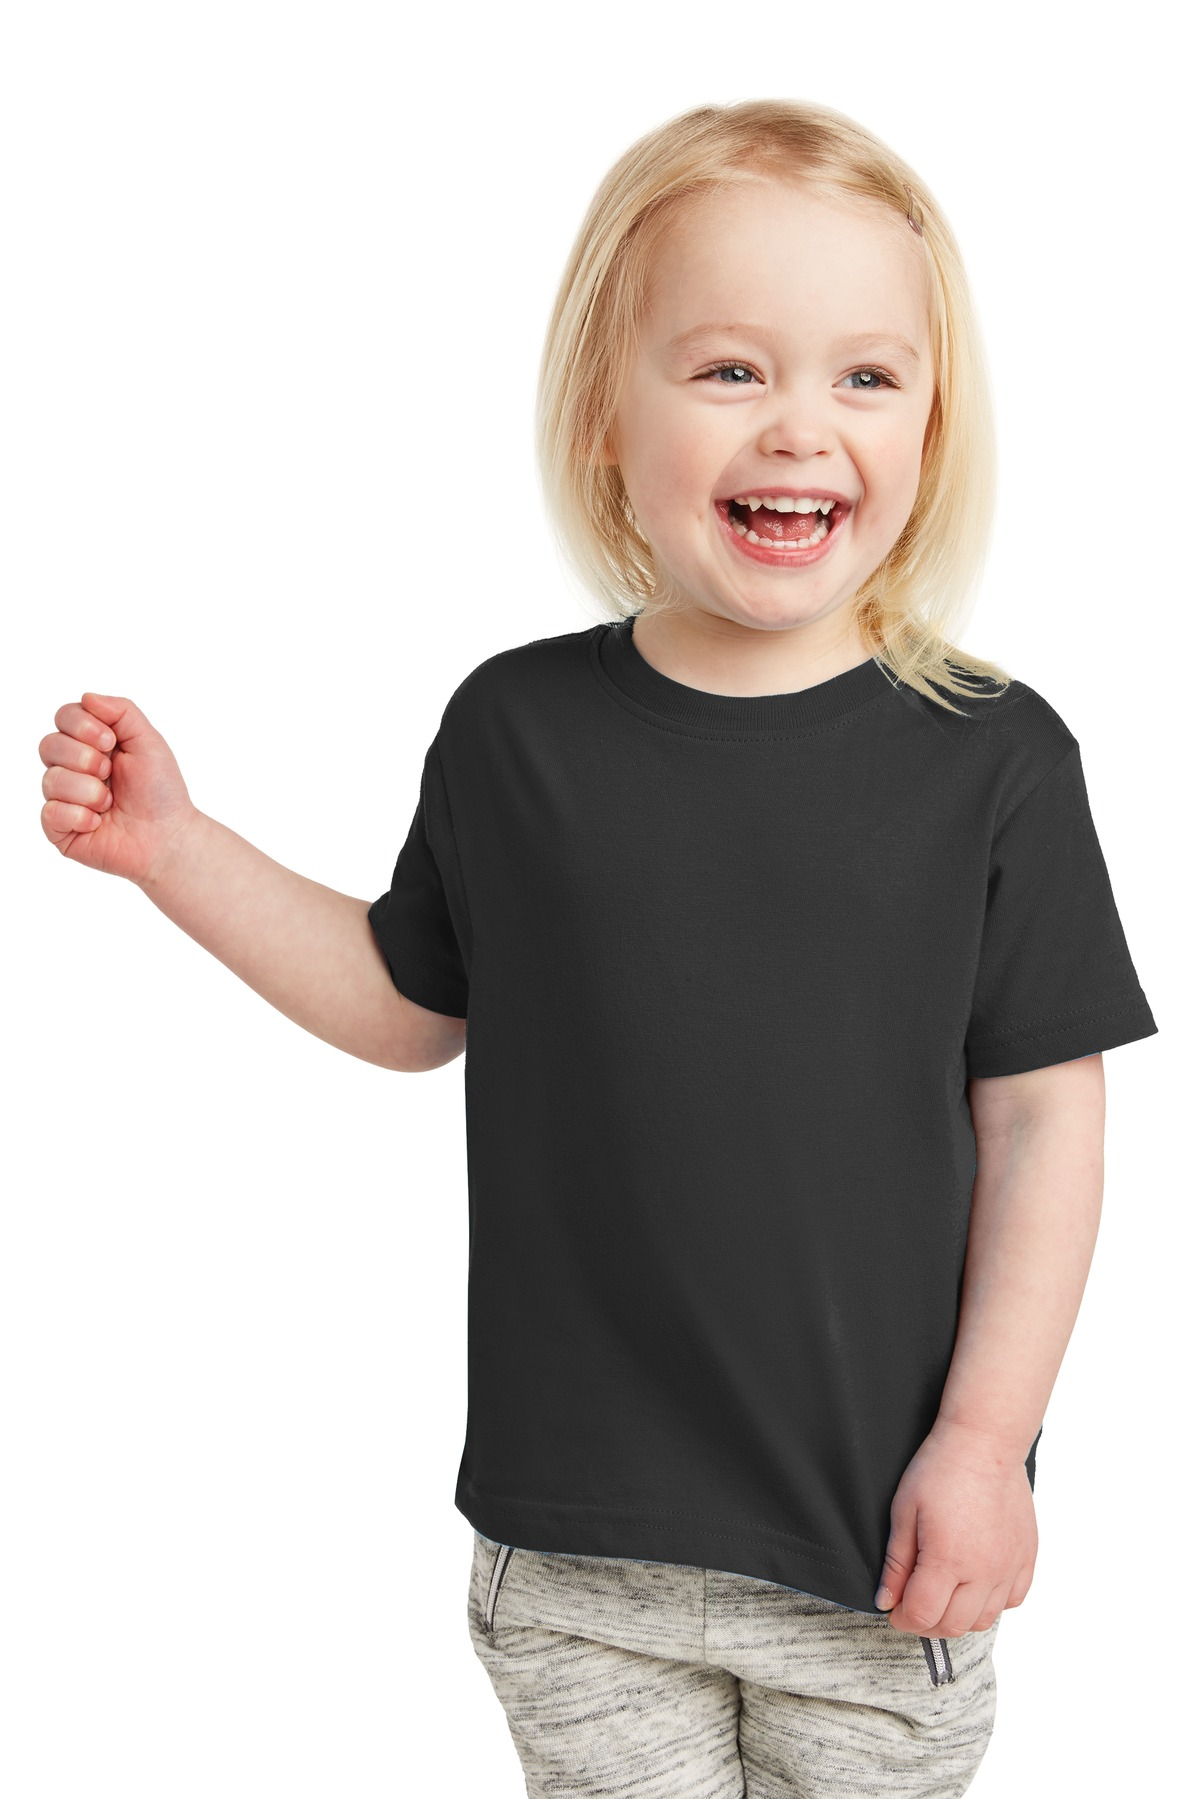 Rabbit Skins ™  Toddler Fine Jersey Tee. RS3321 - Black